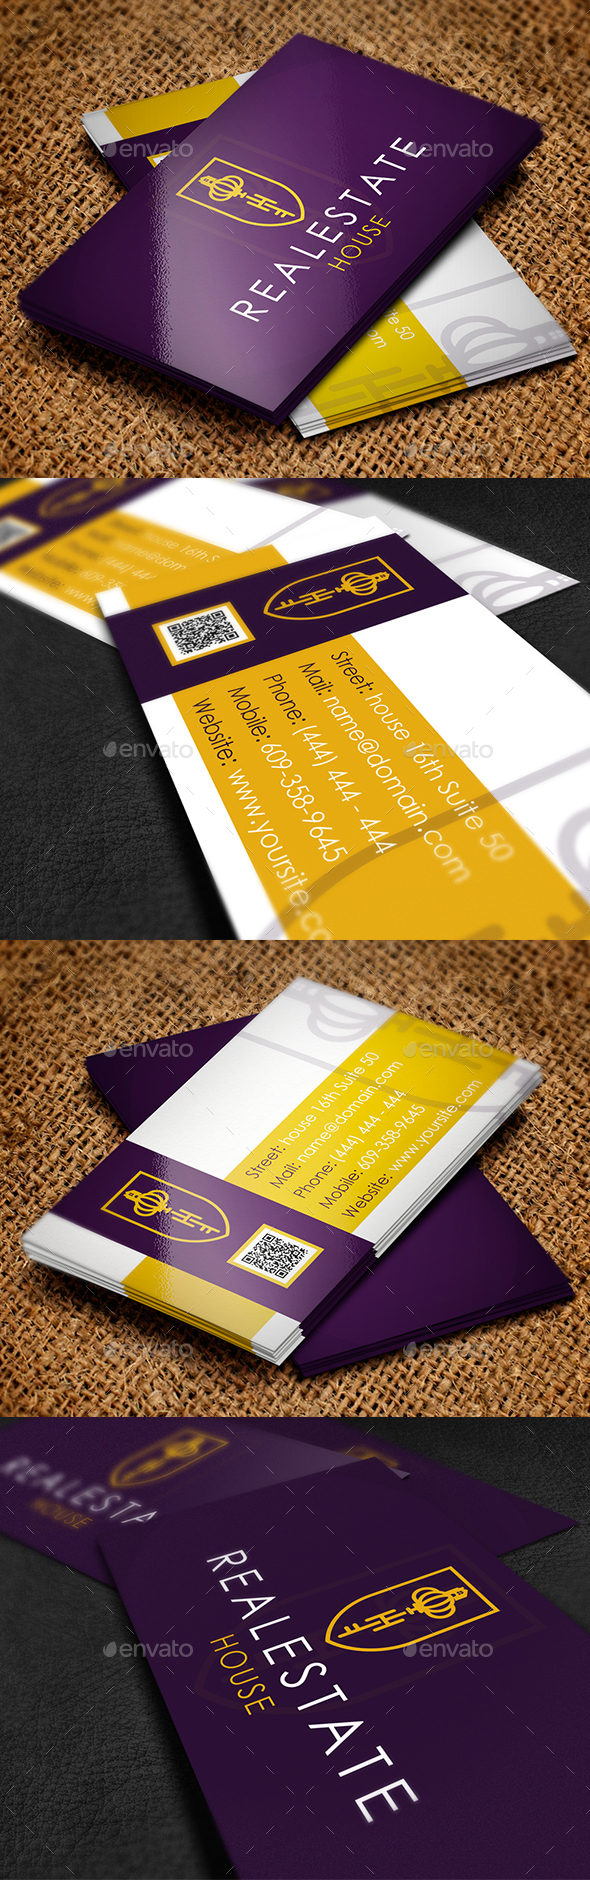 Real Estate Key Business Card - Corporate Business Cards